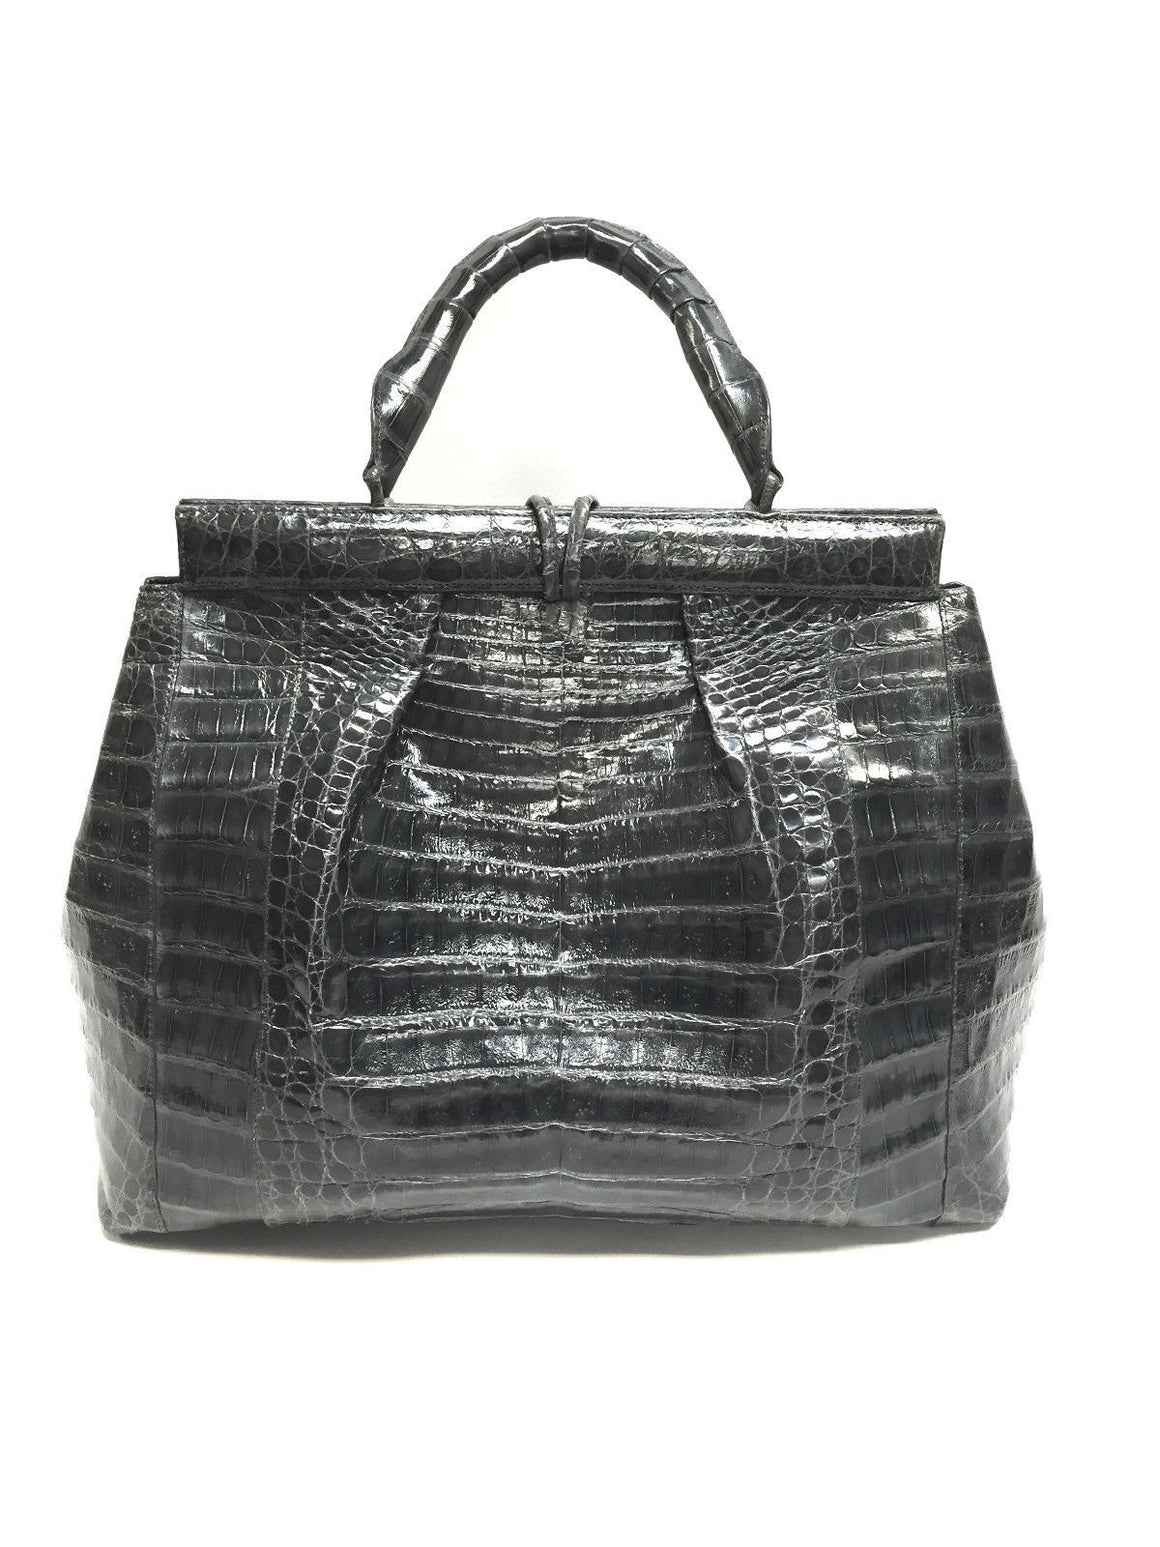 bisbiz.com NANCY GONZALEZ  Magnificent Graphite-Gray Croc Skin Satchel Handbag - Bis Luxury Resale